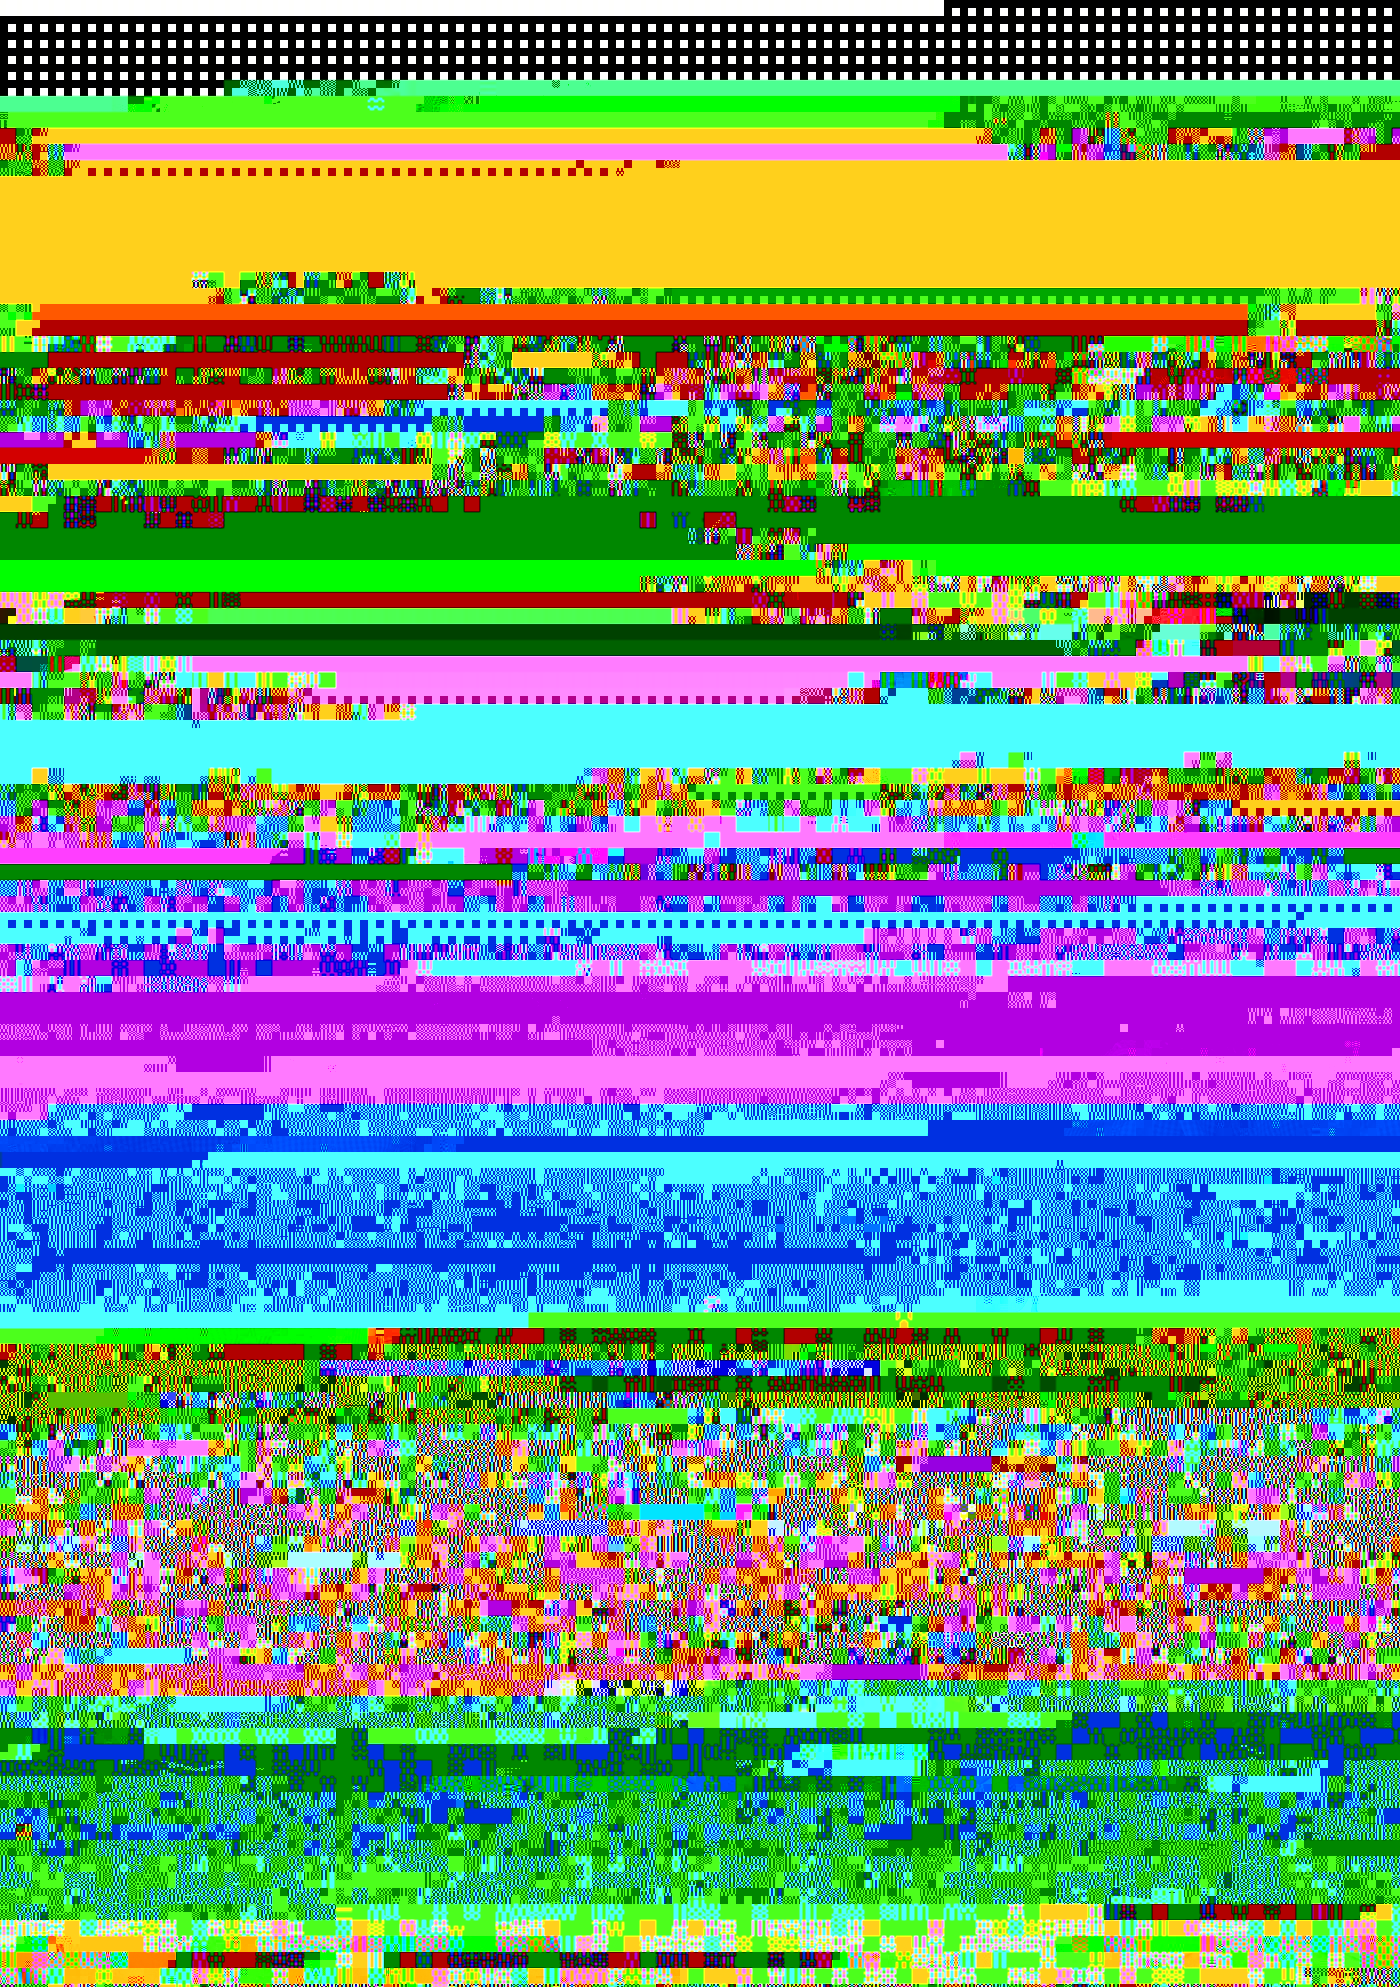 HumanaeVitae_texte_commente